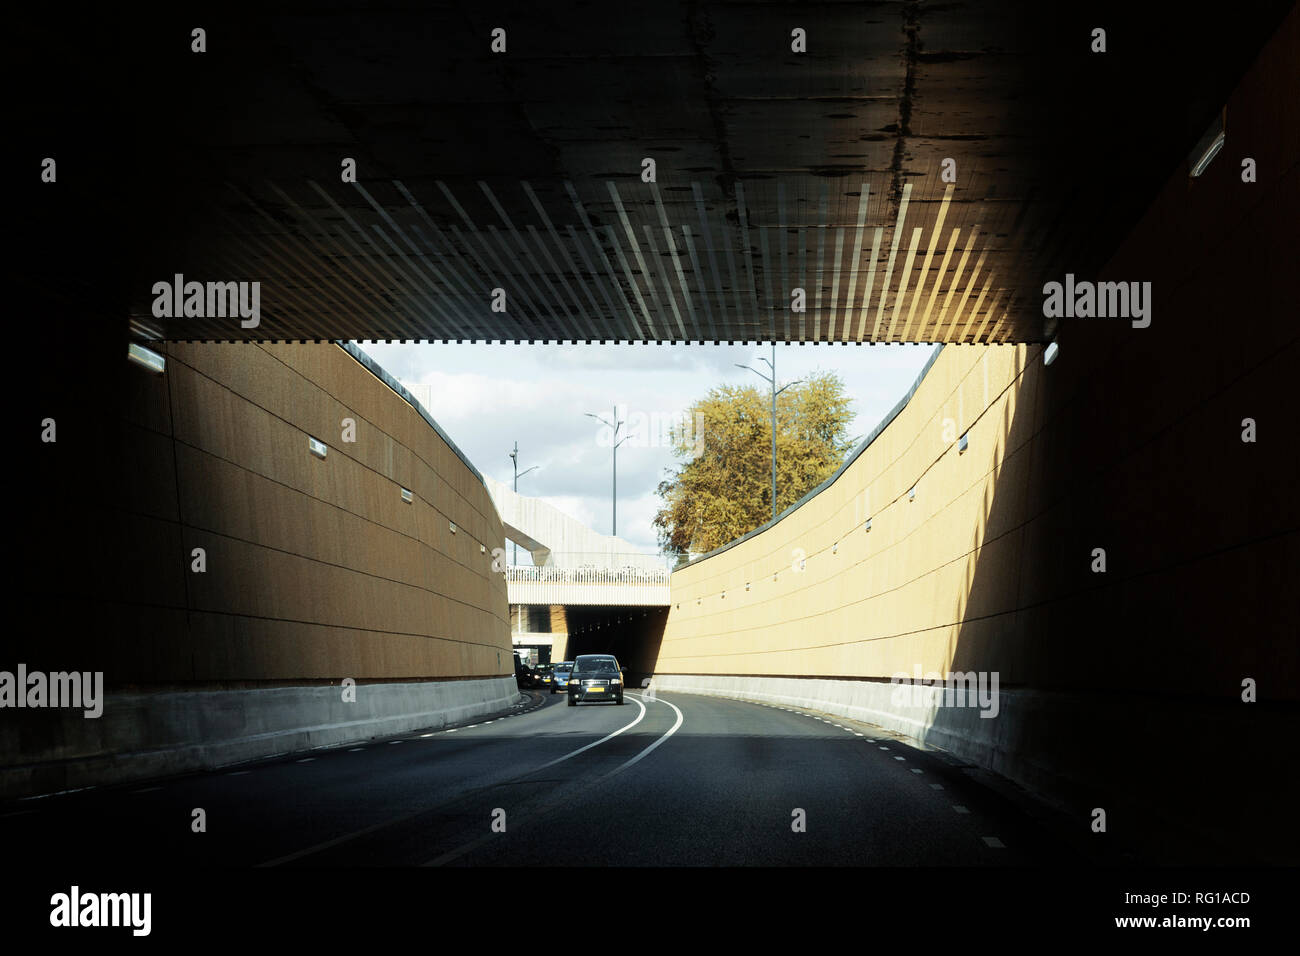 Zutphen, Gelderland / The Netherlands - September 25 2018: Modern dutch underpass cutting below train line for higher level of productivity. - Stock Image